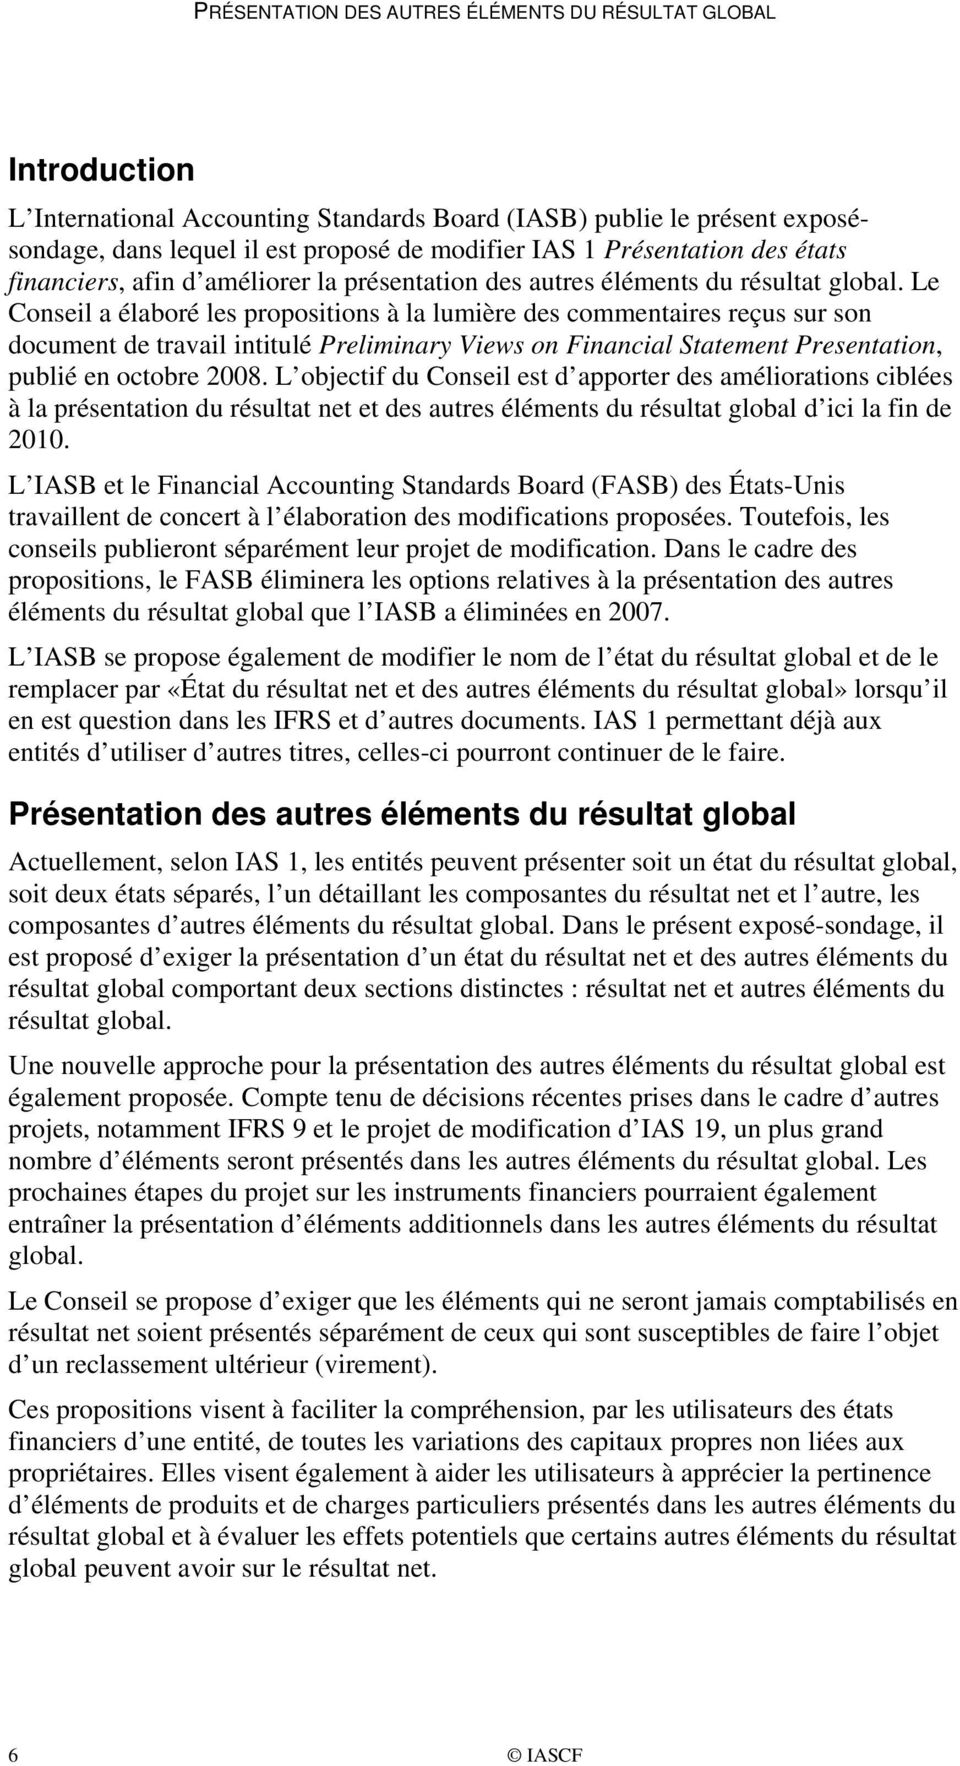 Le Conseil a élaboré les propositions à la lumière des commentaires reçus sur son document de travail intitulé Preliminary Views on Financial Statement Presentation, publié en octobre 2008.